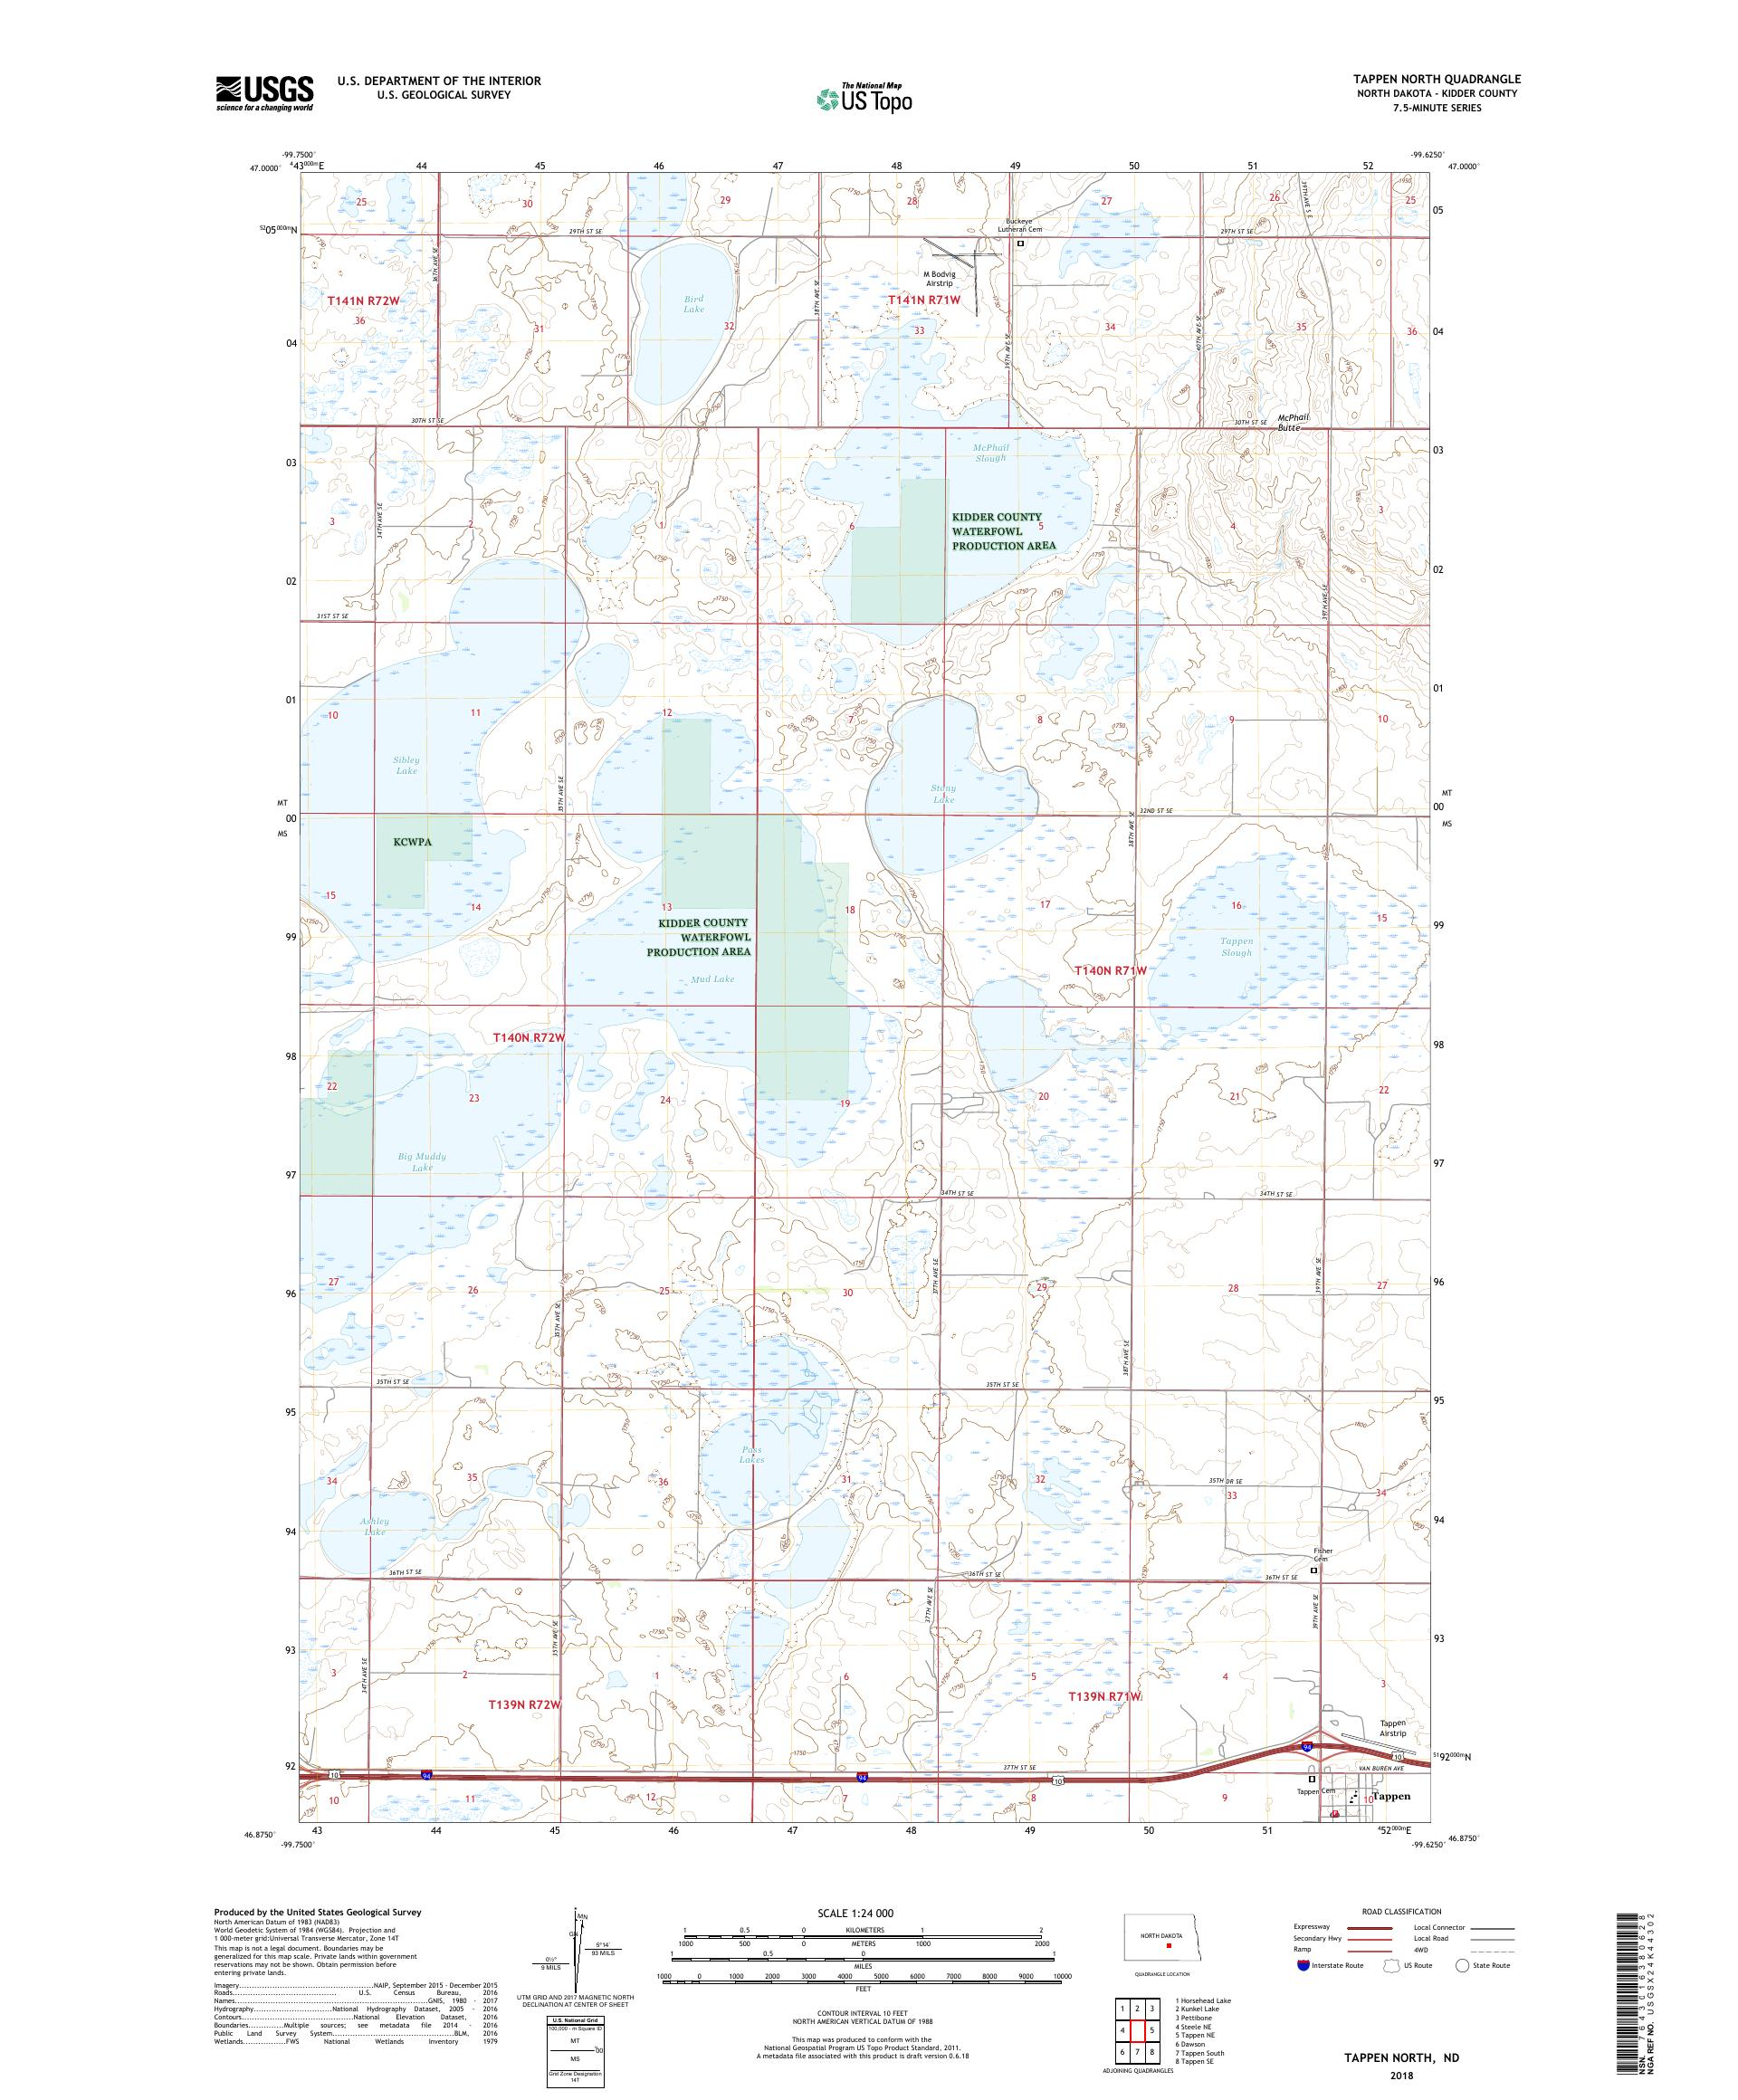 Mytopo Tappen North North Dakota Usgs Quad Topo Map